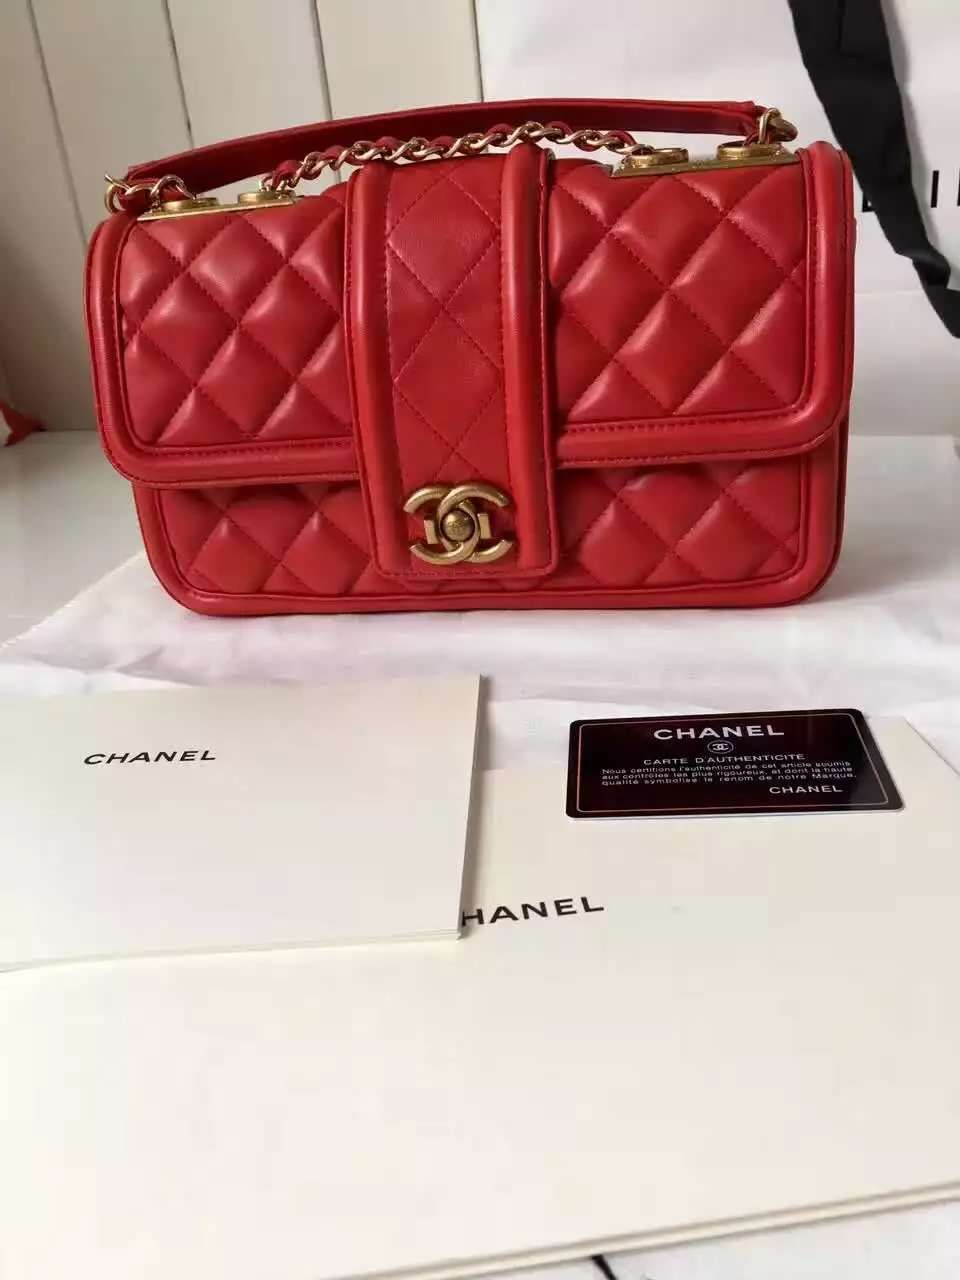 chanel Bag, ID : 63174(FORSALE:a@yybags.com), chanel mens backpacks, chanel handbags sale online, chanel designer travel wallet, chanel cool backpacks, chanel cheap designer bags, chanel cheap wallets, chanel best backpacks, chanel my wallet, chanel blue handbags, chanel trolley backpack, show chanel, chanel shopping handbags #chanelBag #chanel #chanel #leather #purse #sale